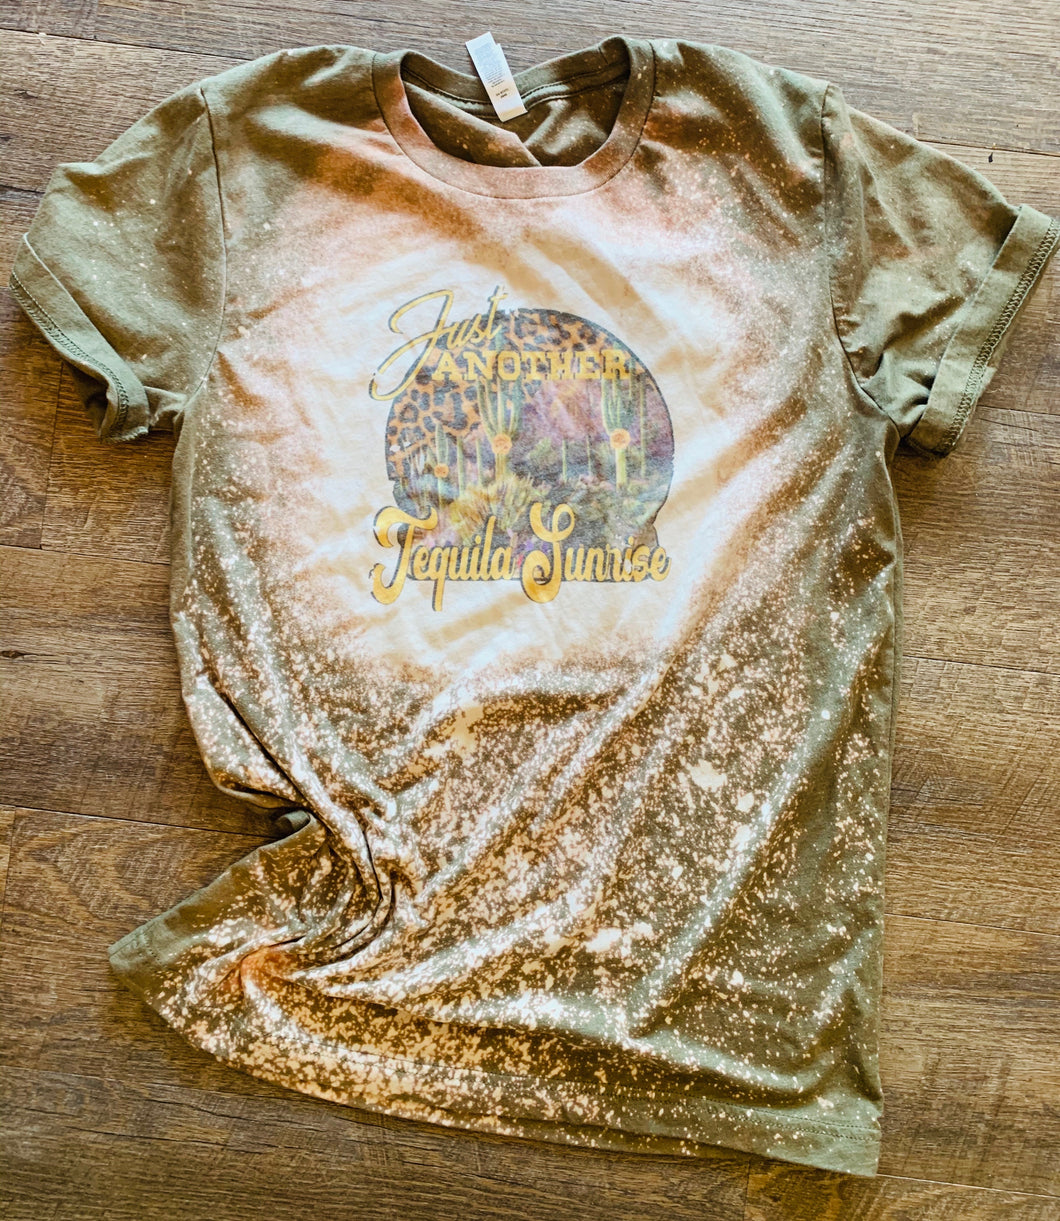 Just Another Tequila Sunrise Bleached Tee - Mavictoria Designs Hot Press Express